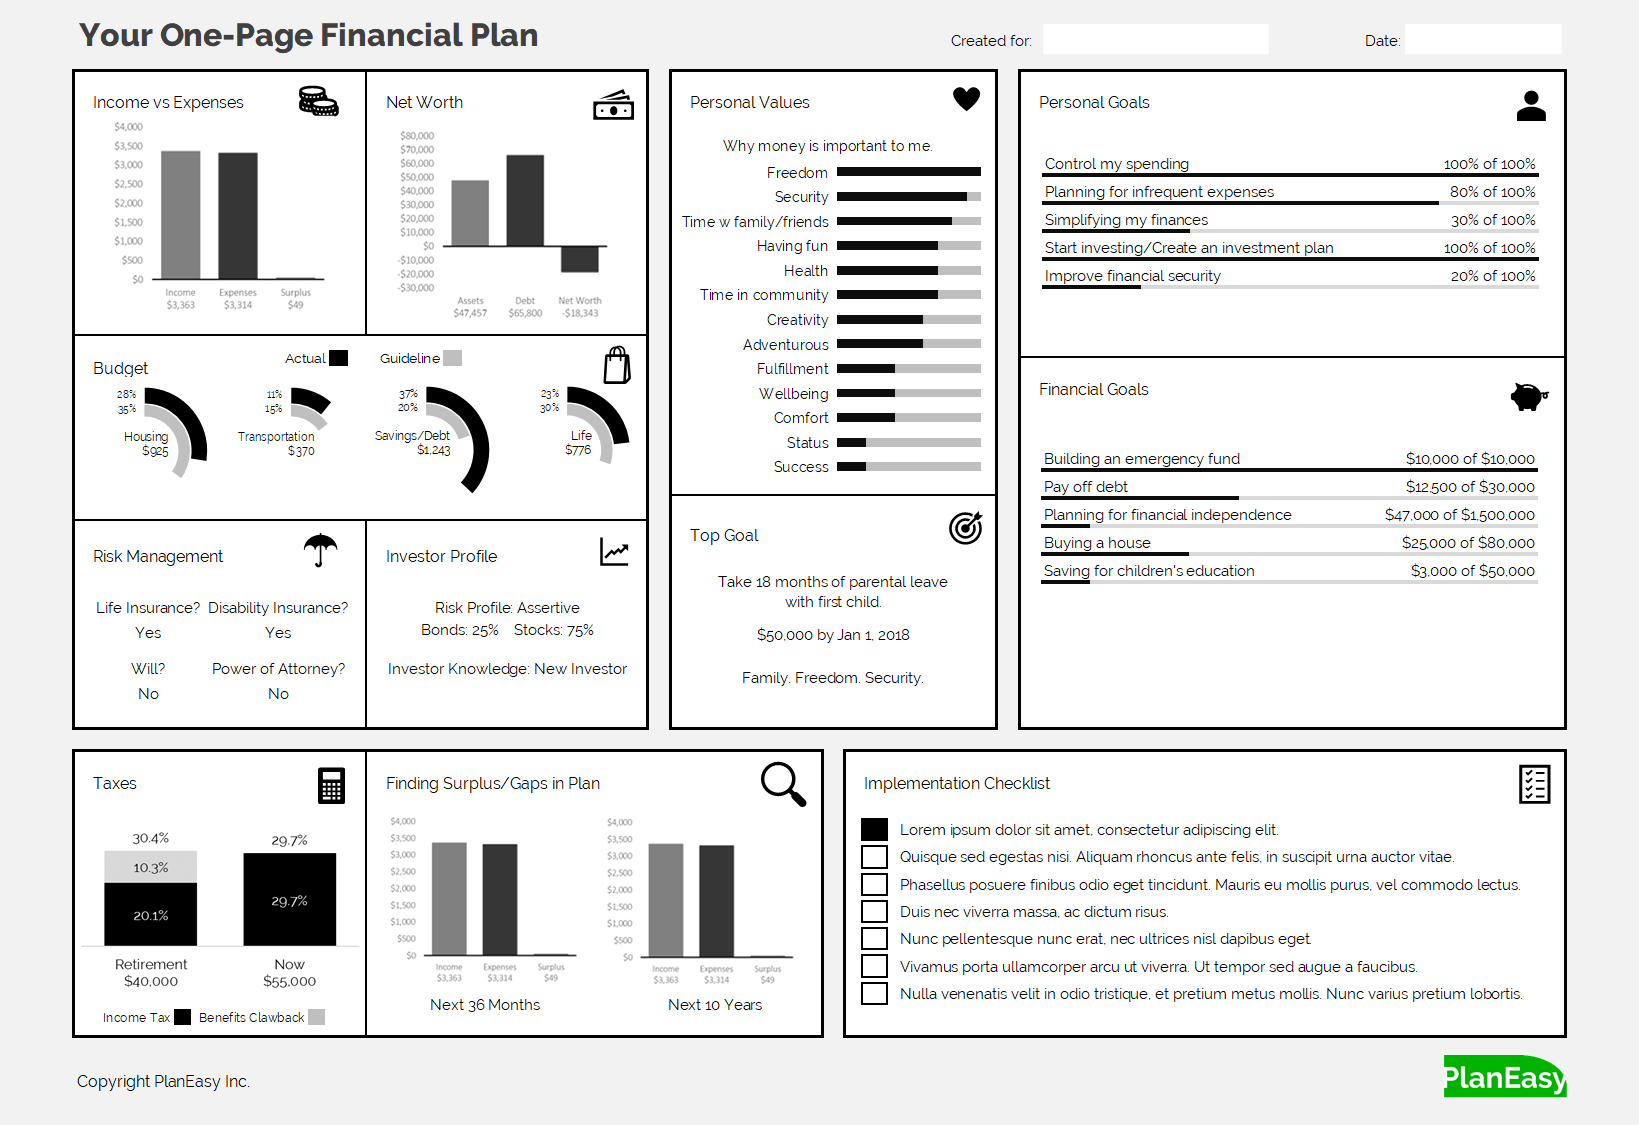 One Page Financial Plan Planeasy